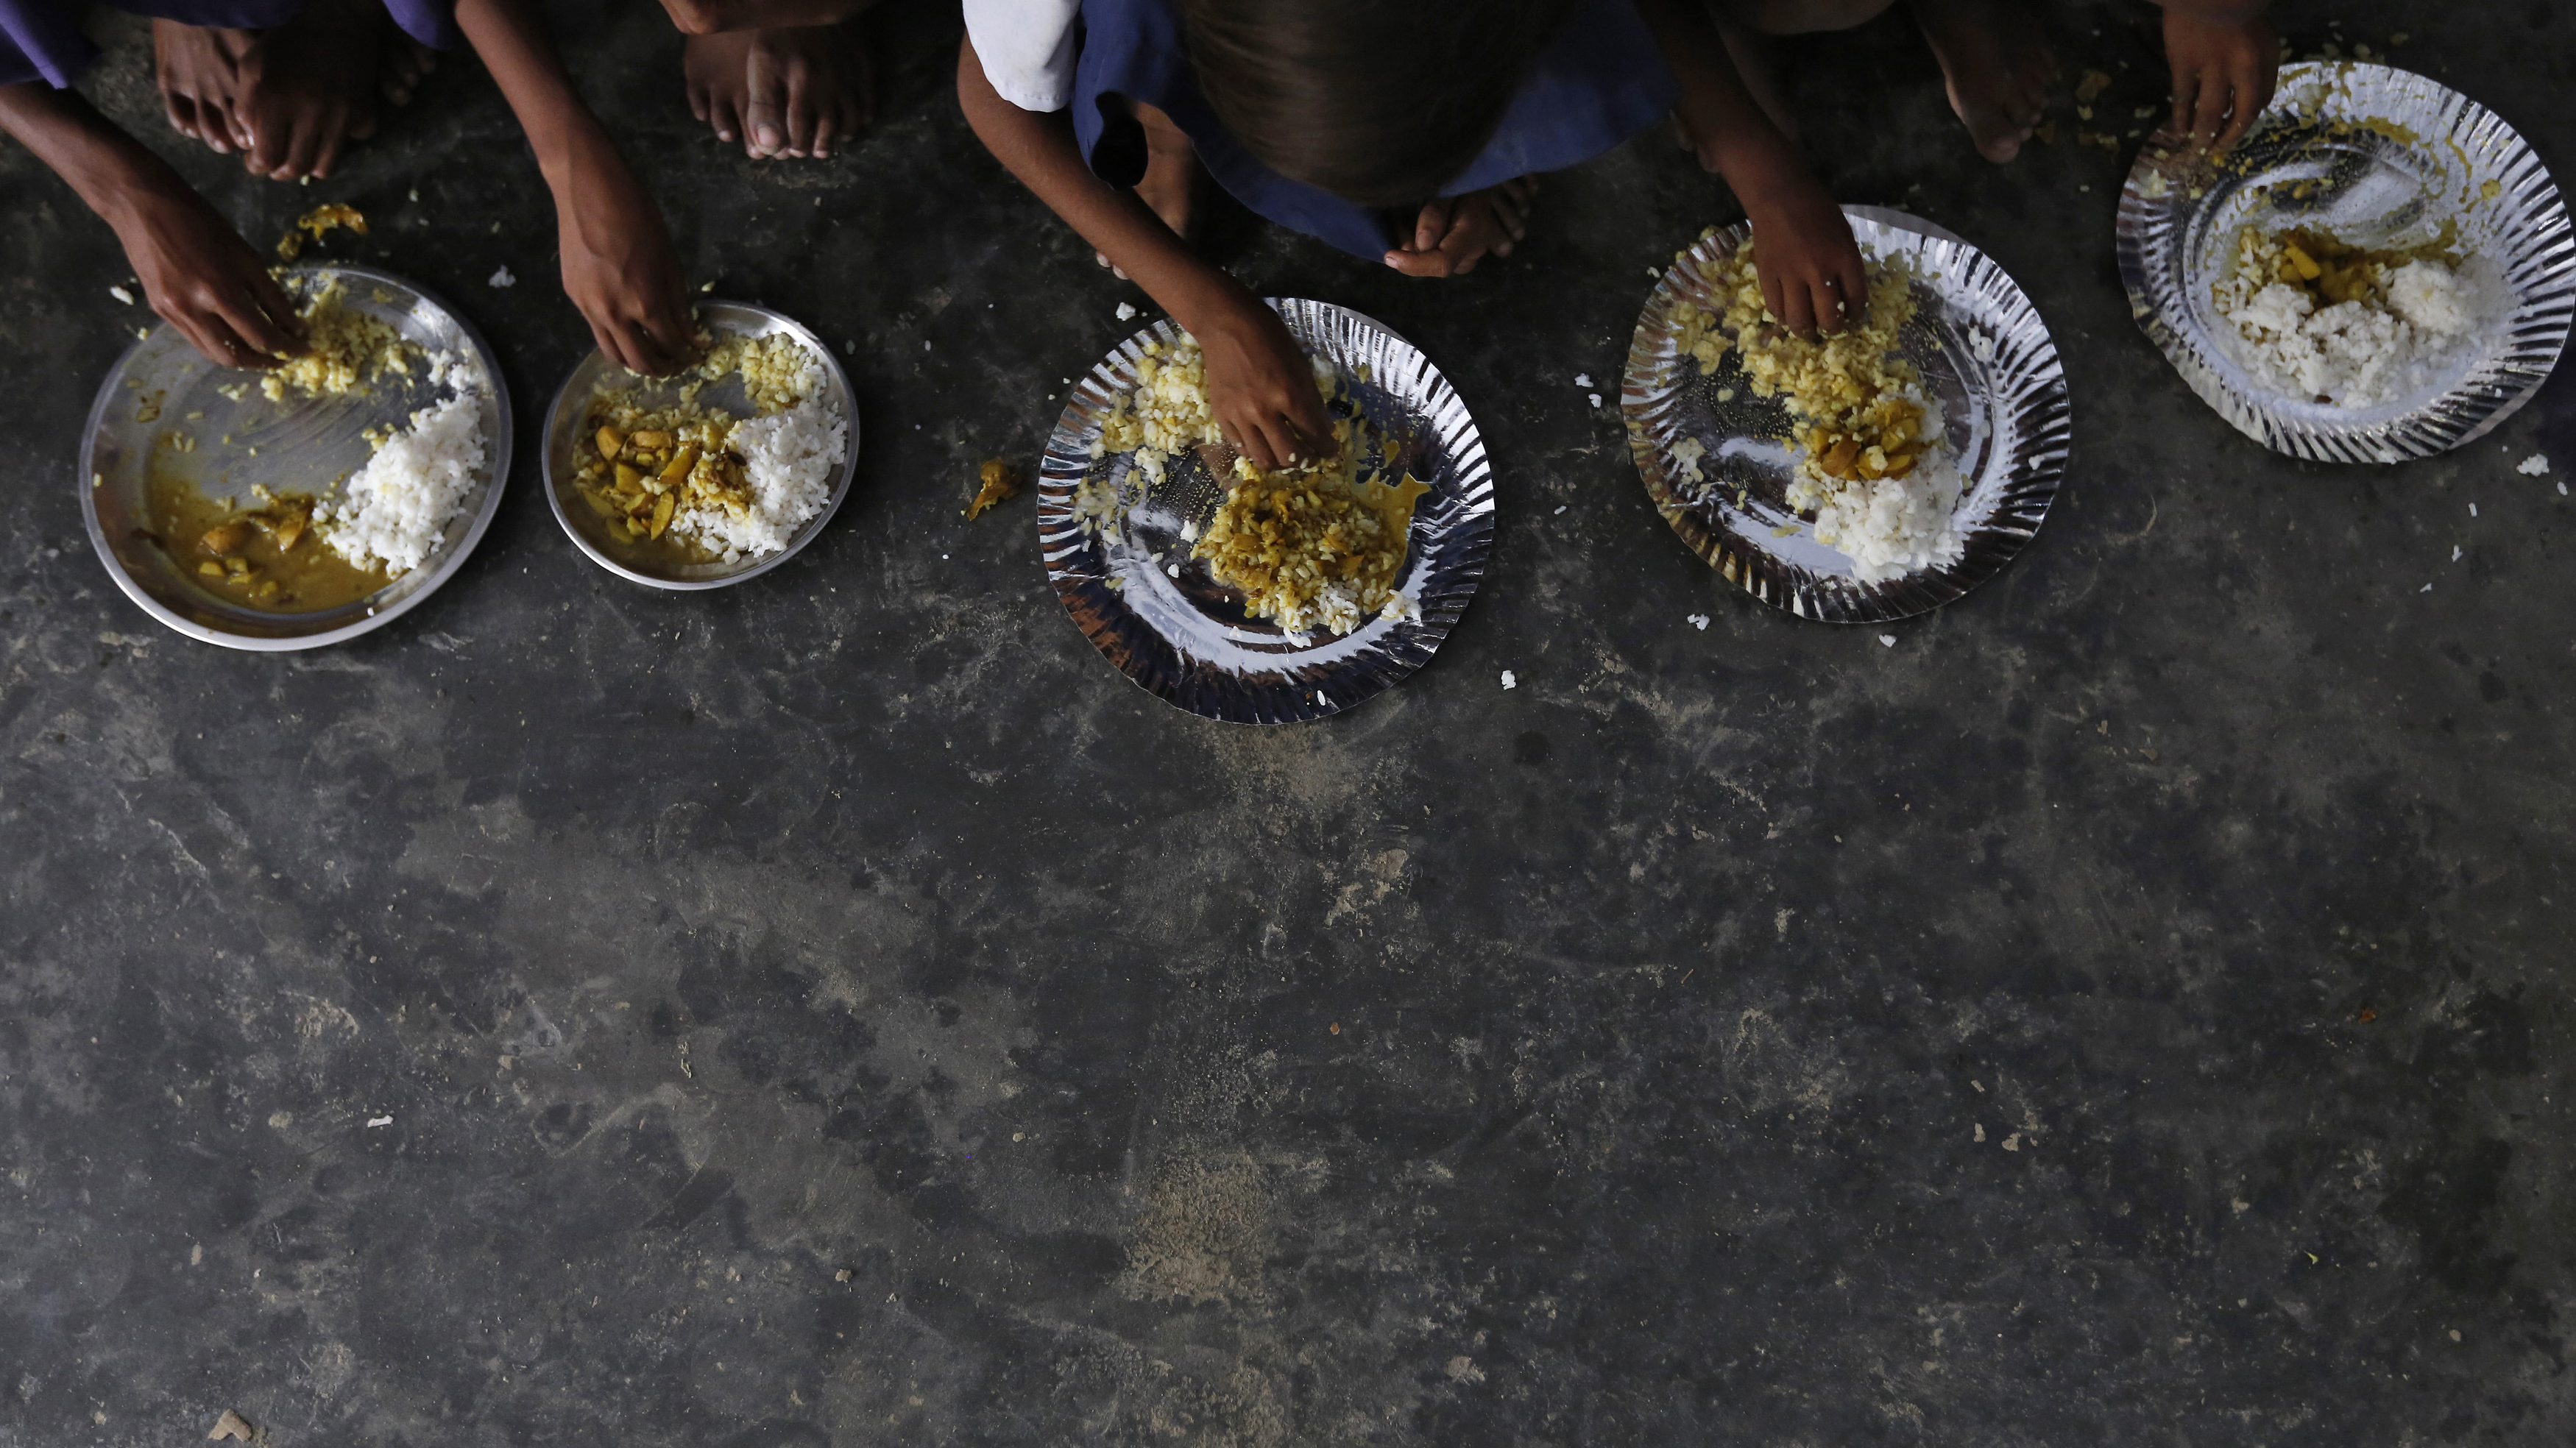 During Lockdown, Tripura Govt Didn't Provide Mid-Day Meal Food Grains to Any Child